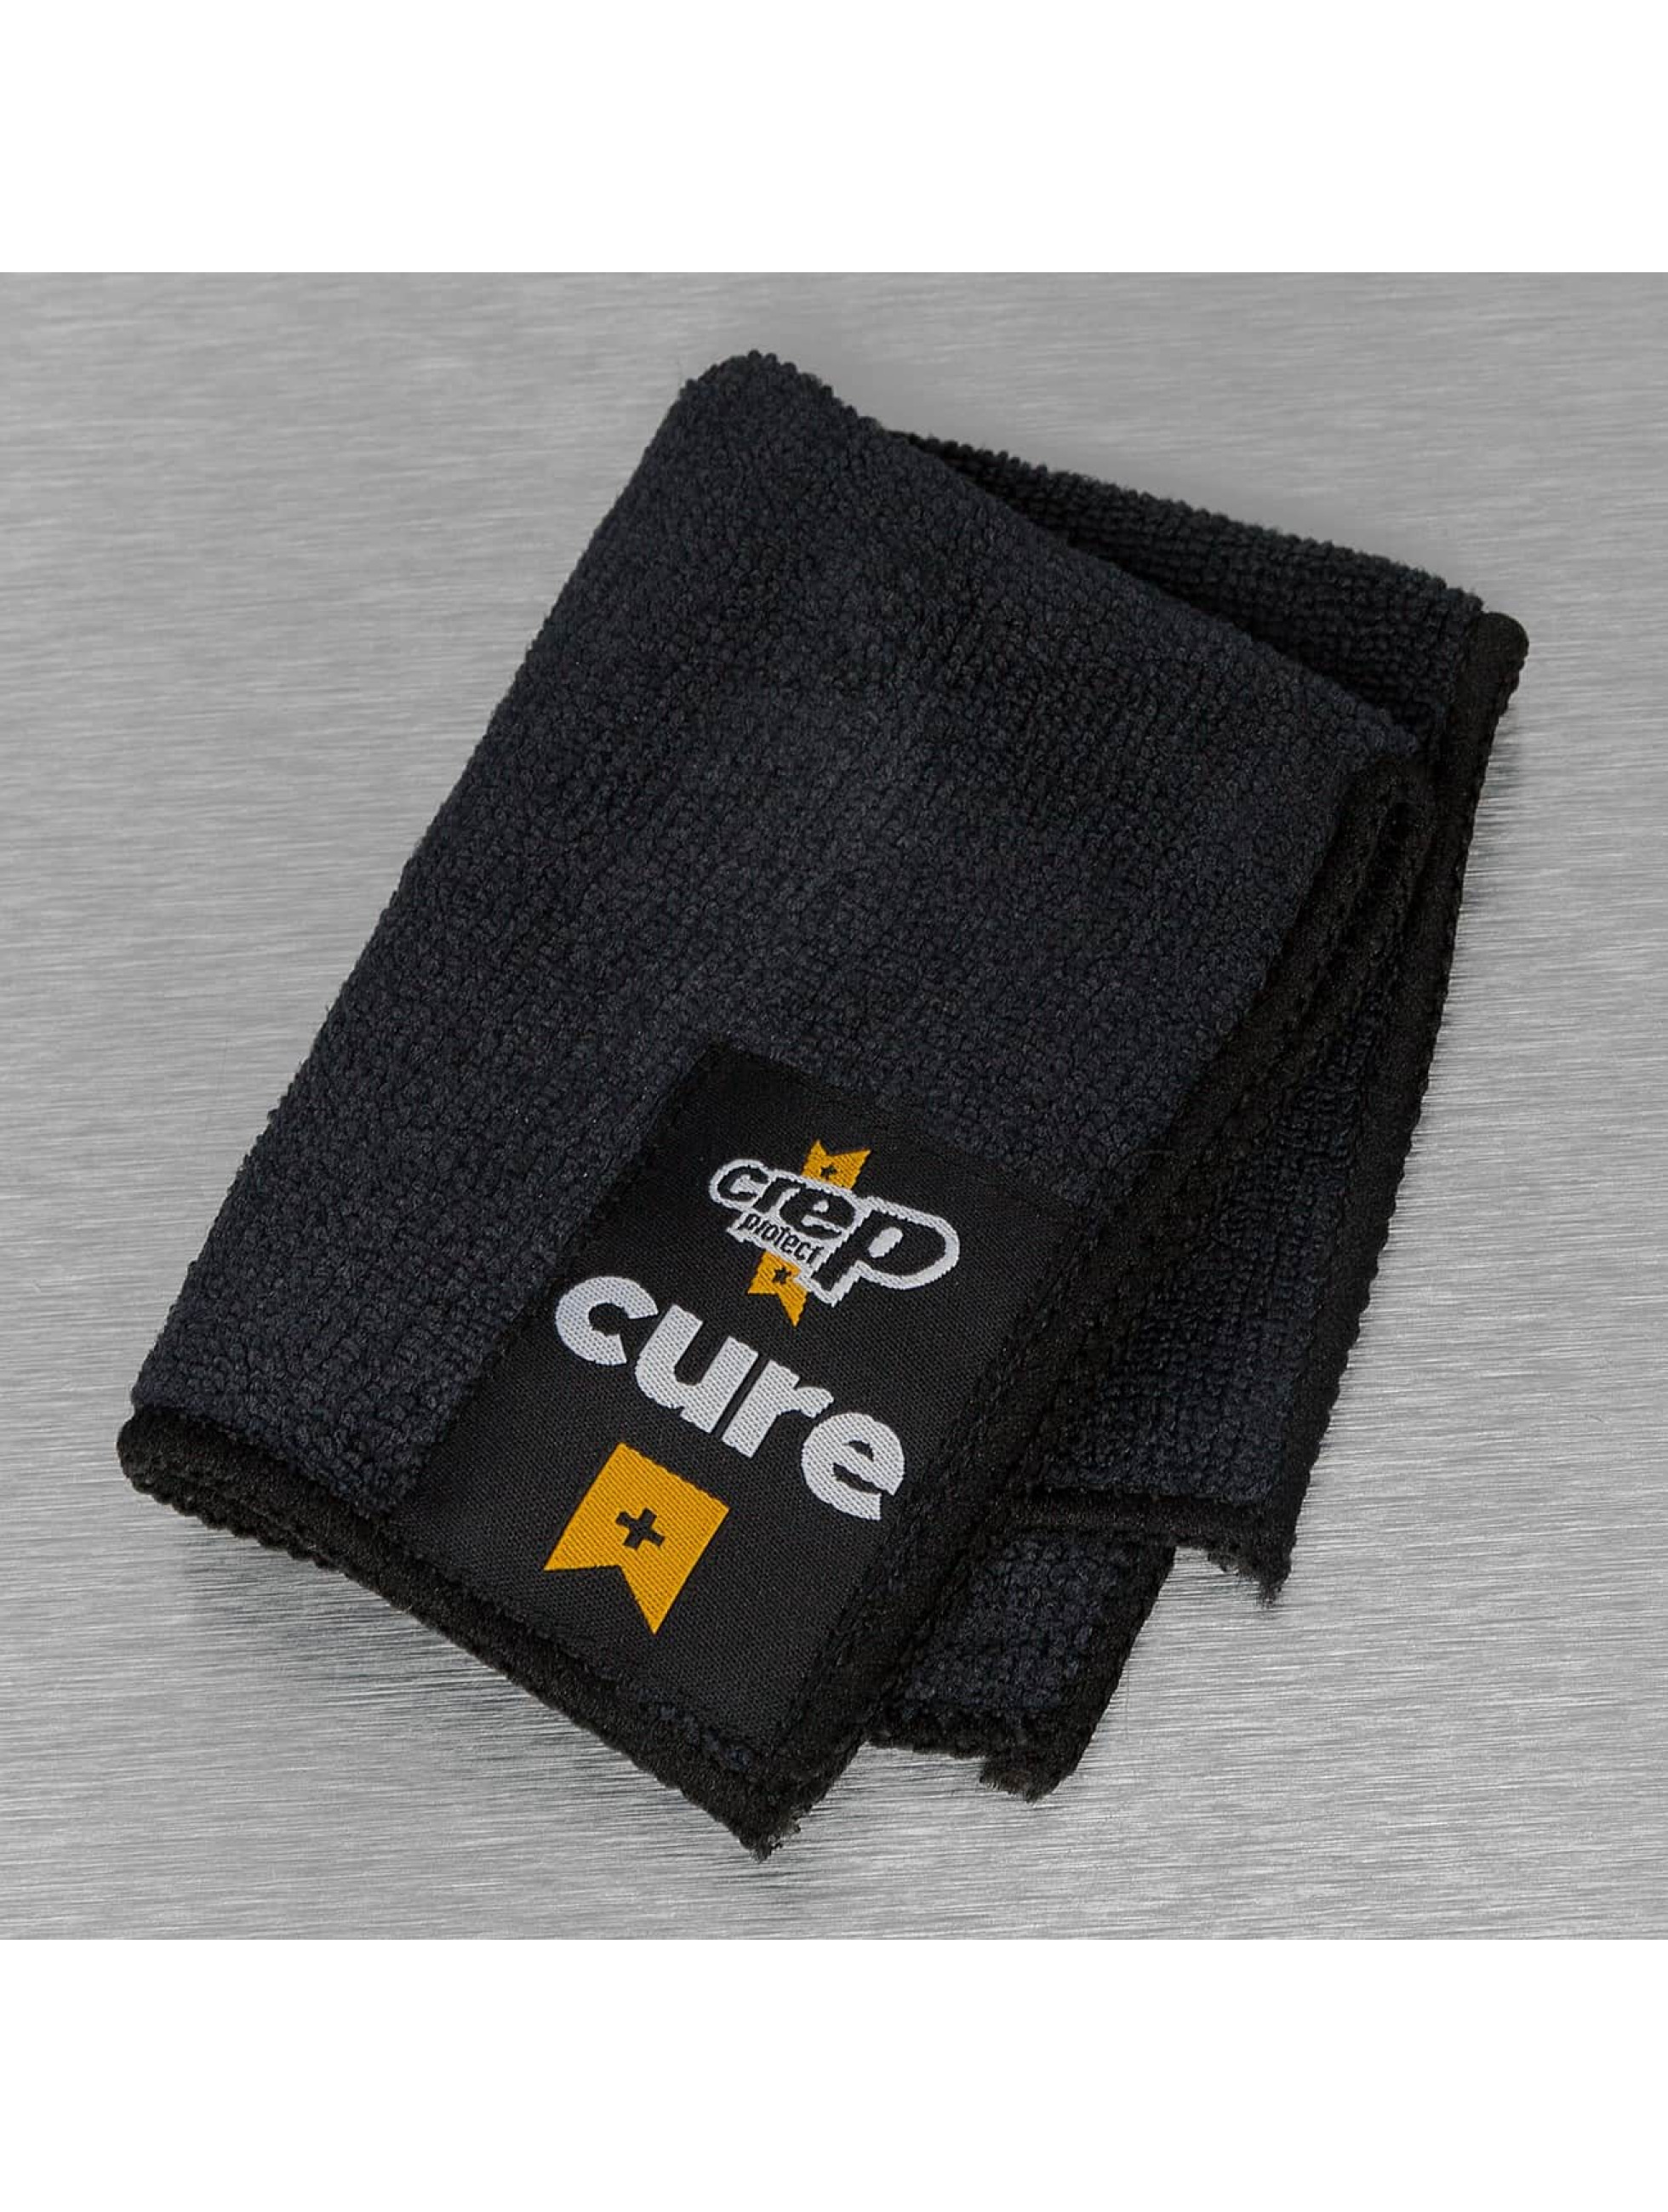 Crep Protect More Crep Cure black